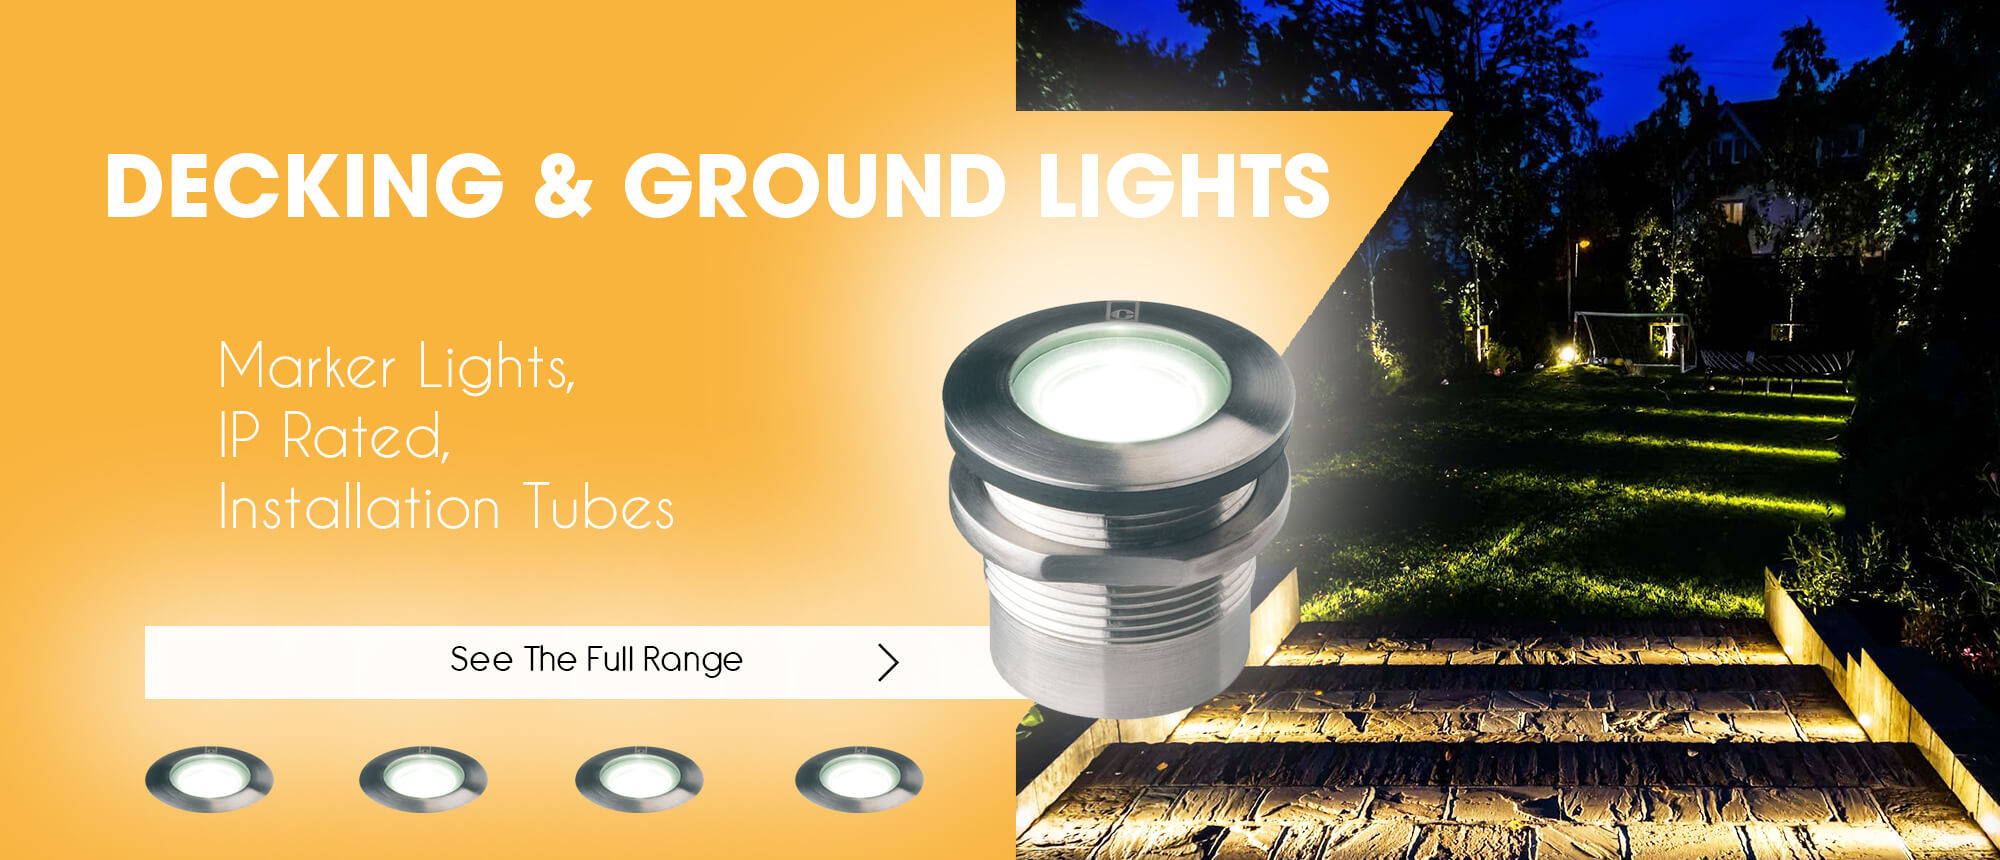 Collection of decking and ground lights at GloFix